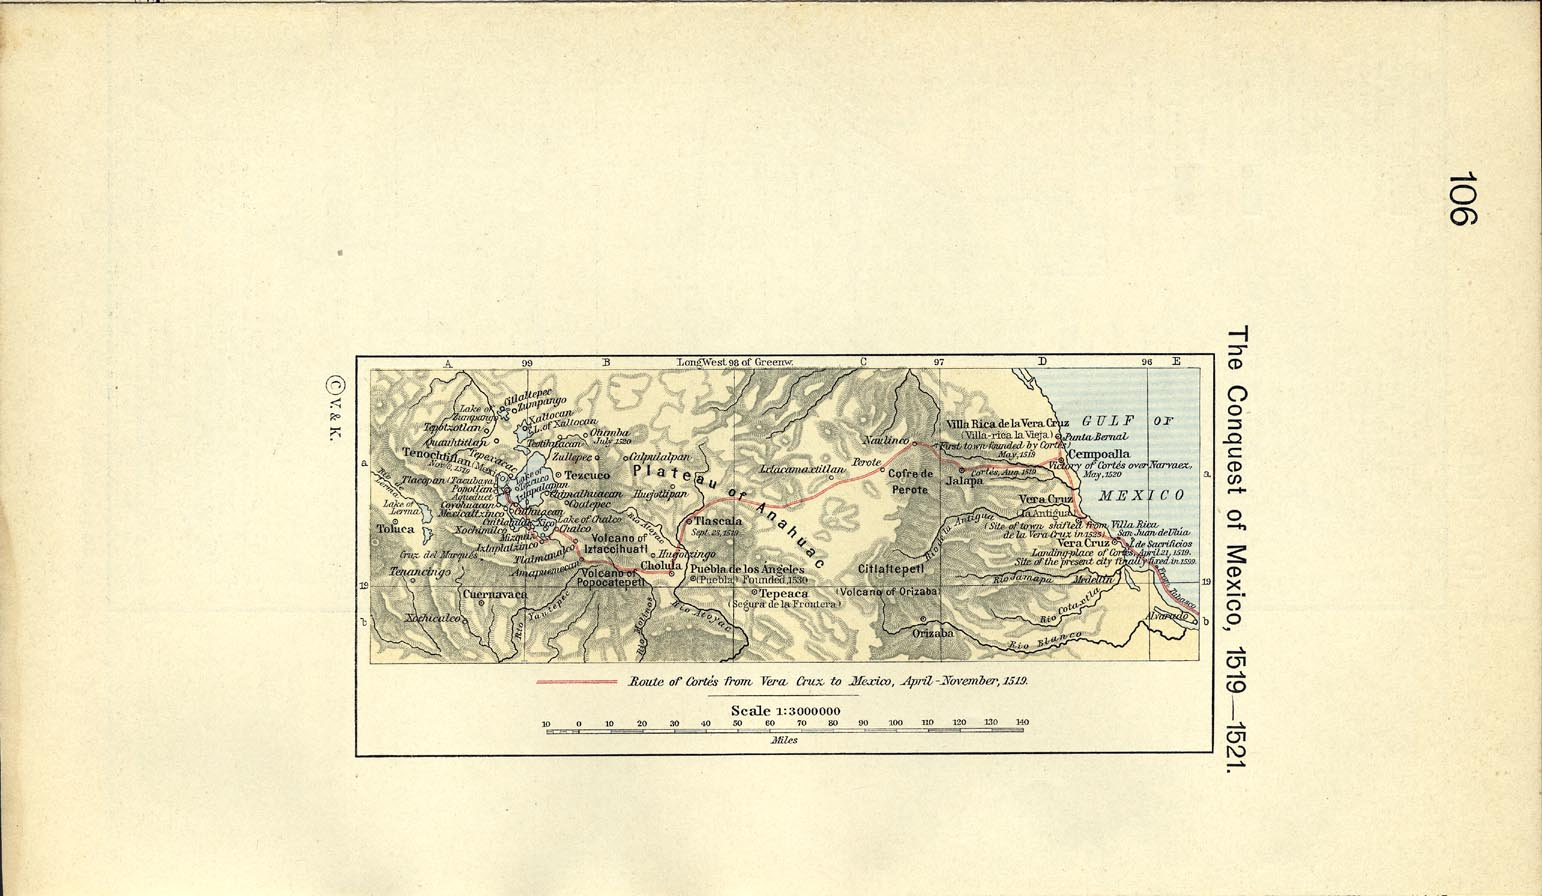 The Portuguese In The Age Of Discovery C 1340 1665 By: Historical Atlas By William R. Shepherd